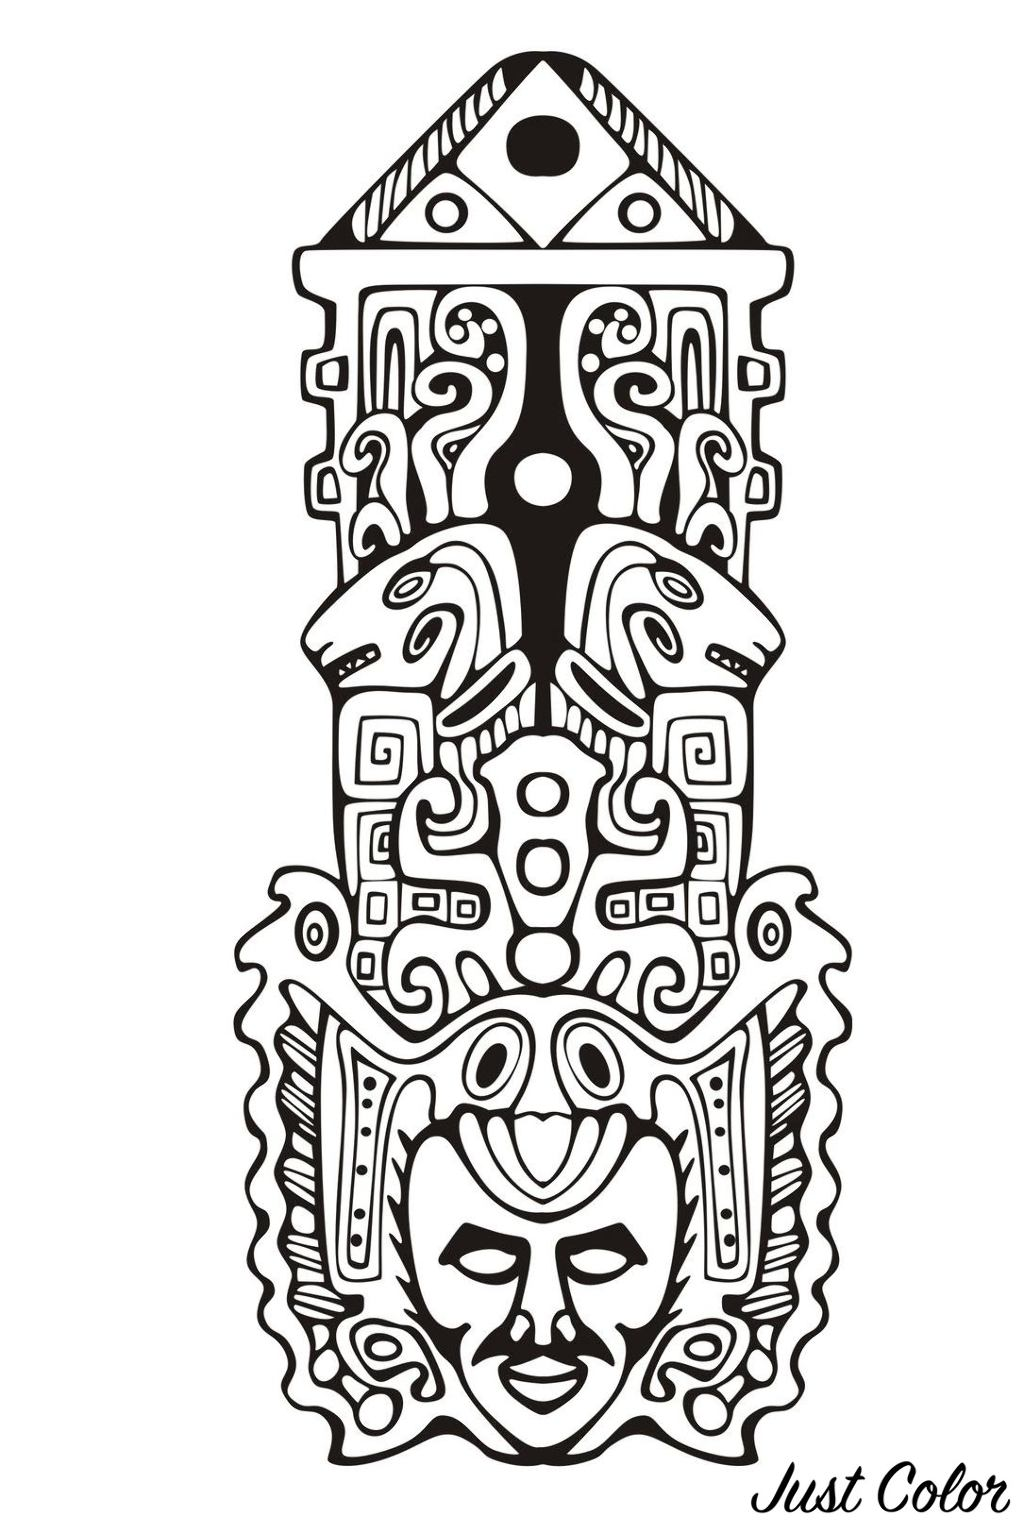 Totem inspired by Aztecs, Mayans and Incas - 7